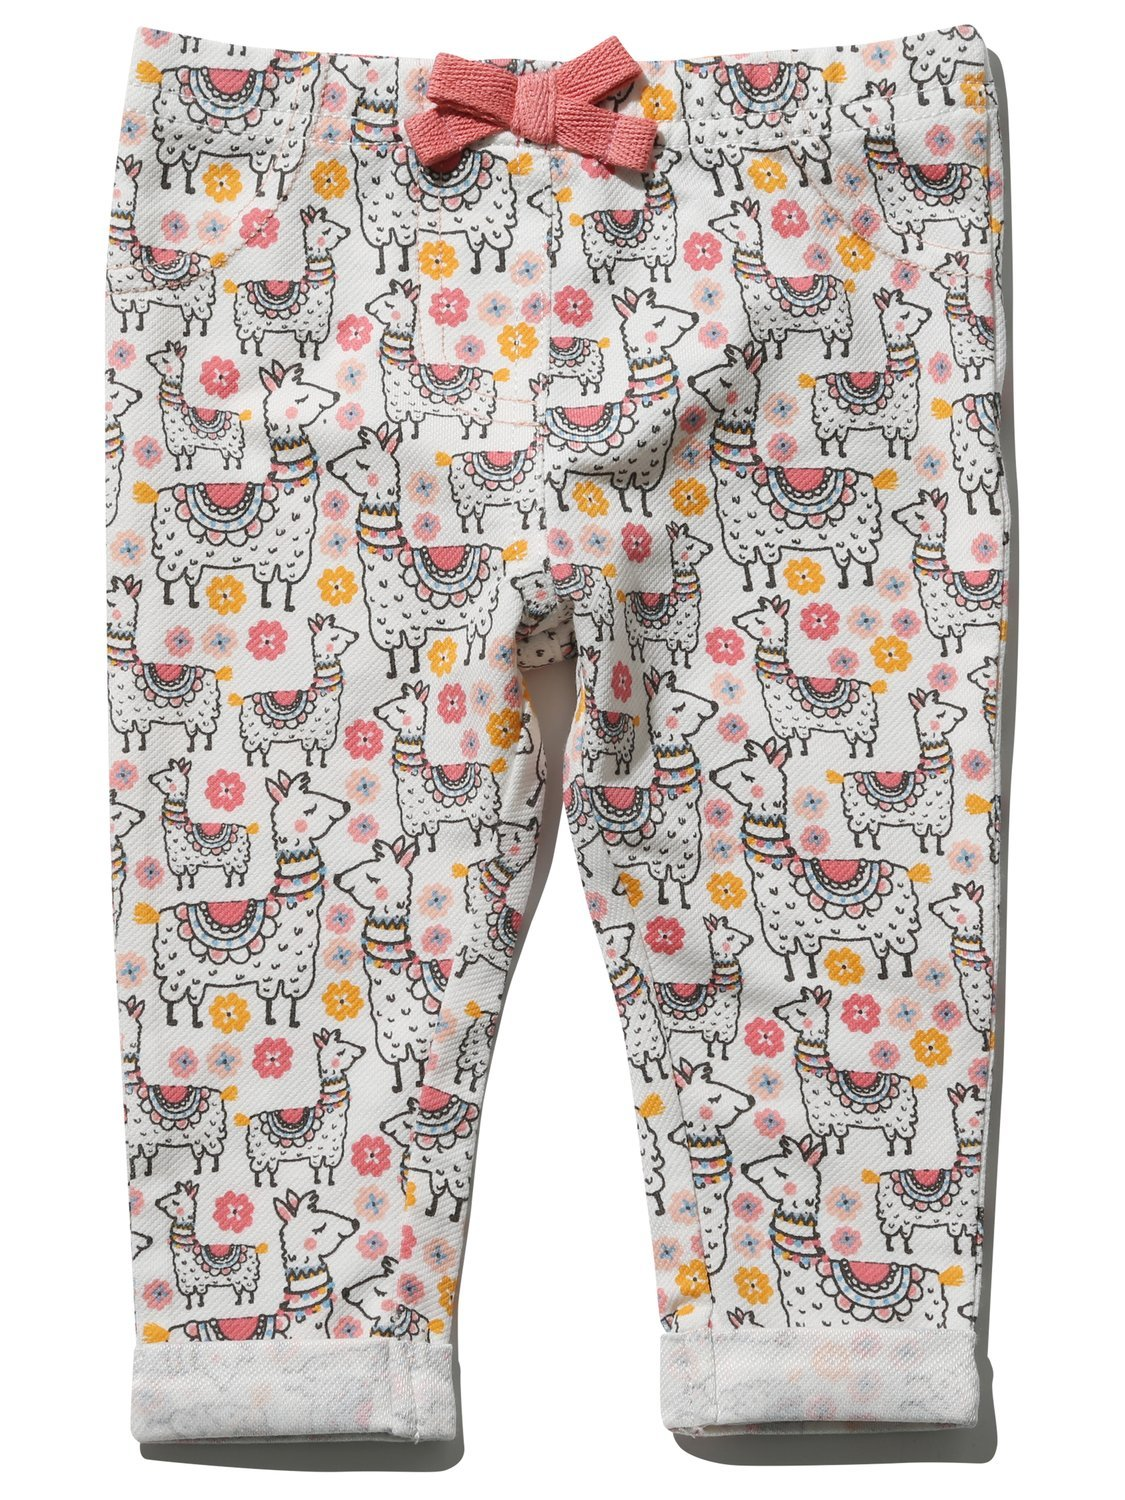 M&Co Baby Girl 100% Cotton Llama Print Pink Bow Stretch Waistband Turn up Jeggings